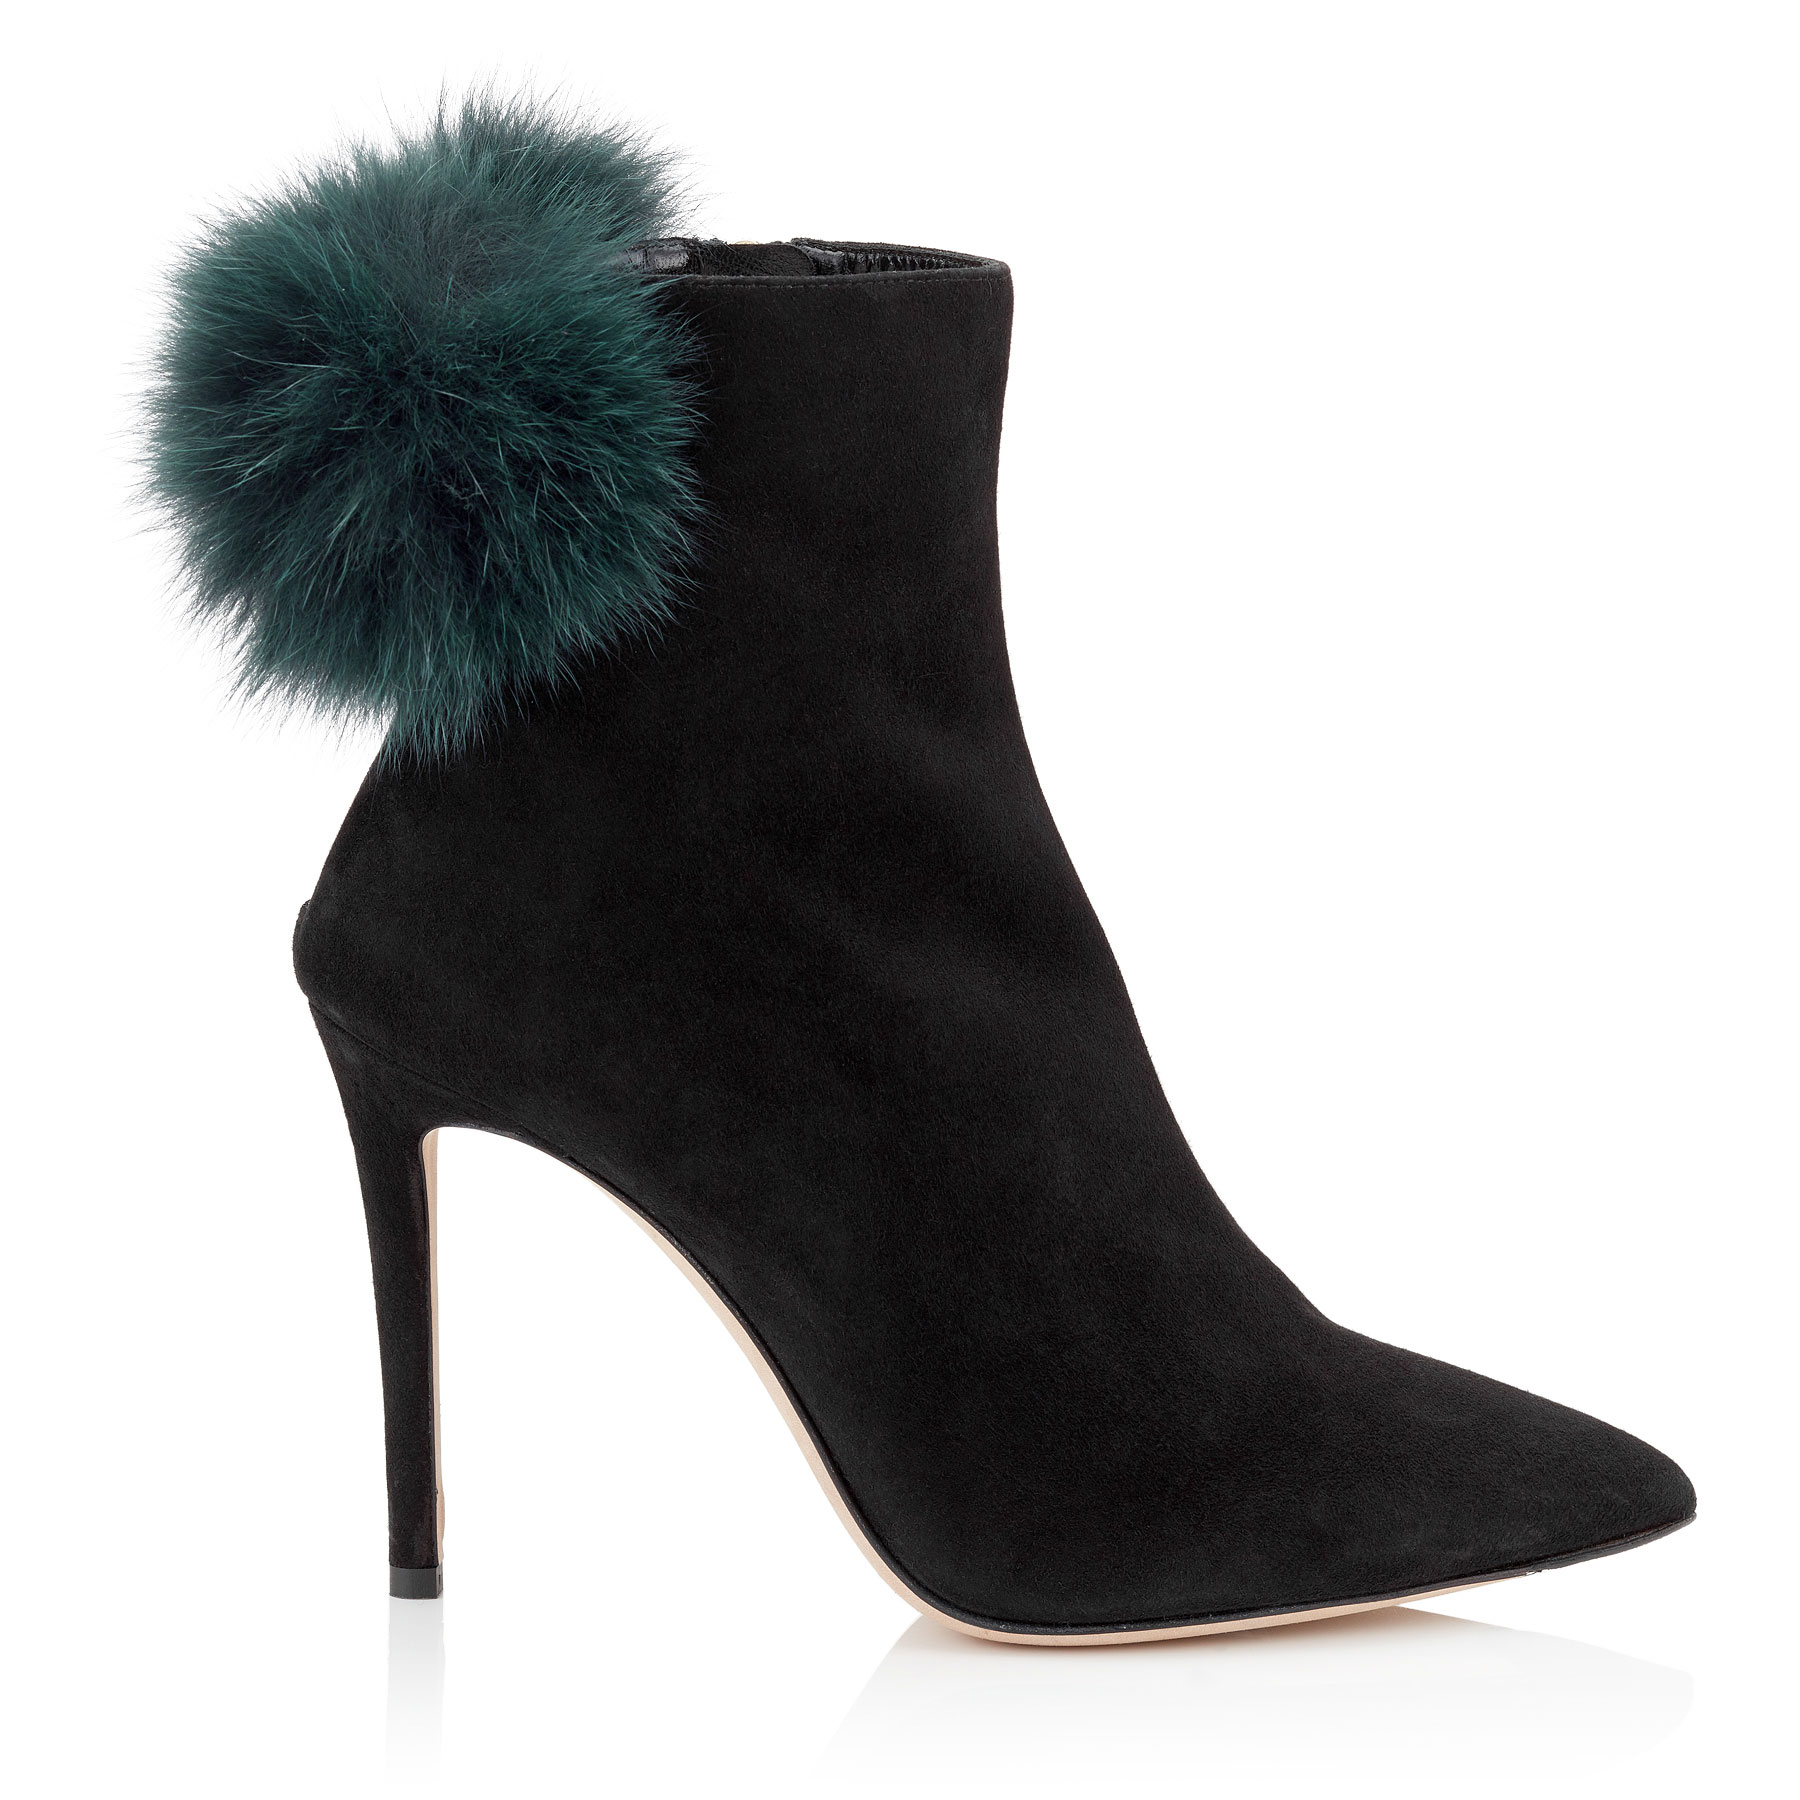 TESLER 100 Black Suede Booties with Bottle Green Fox Fur Pom Poms by Jimmy Choo